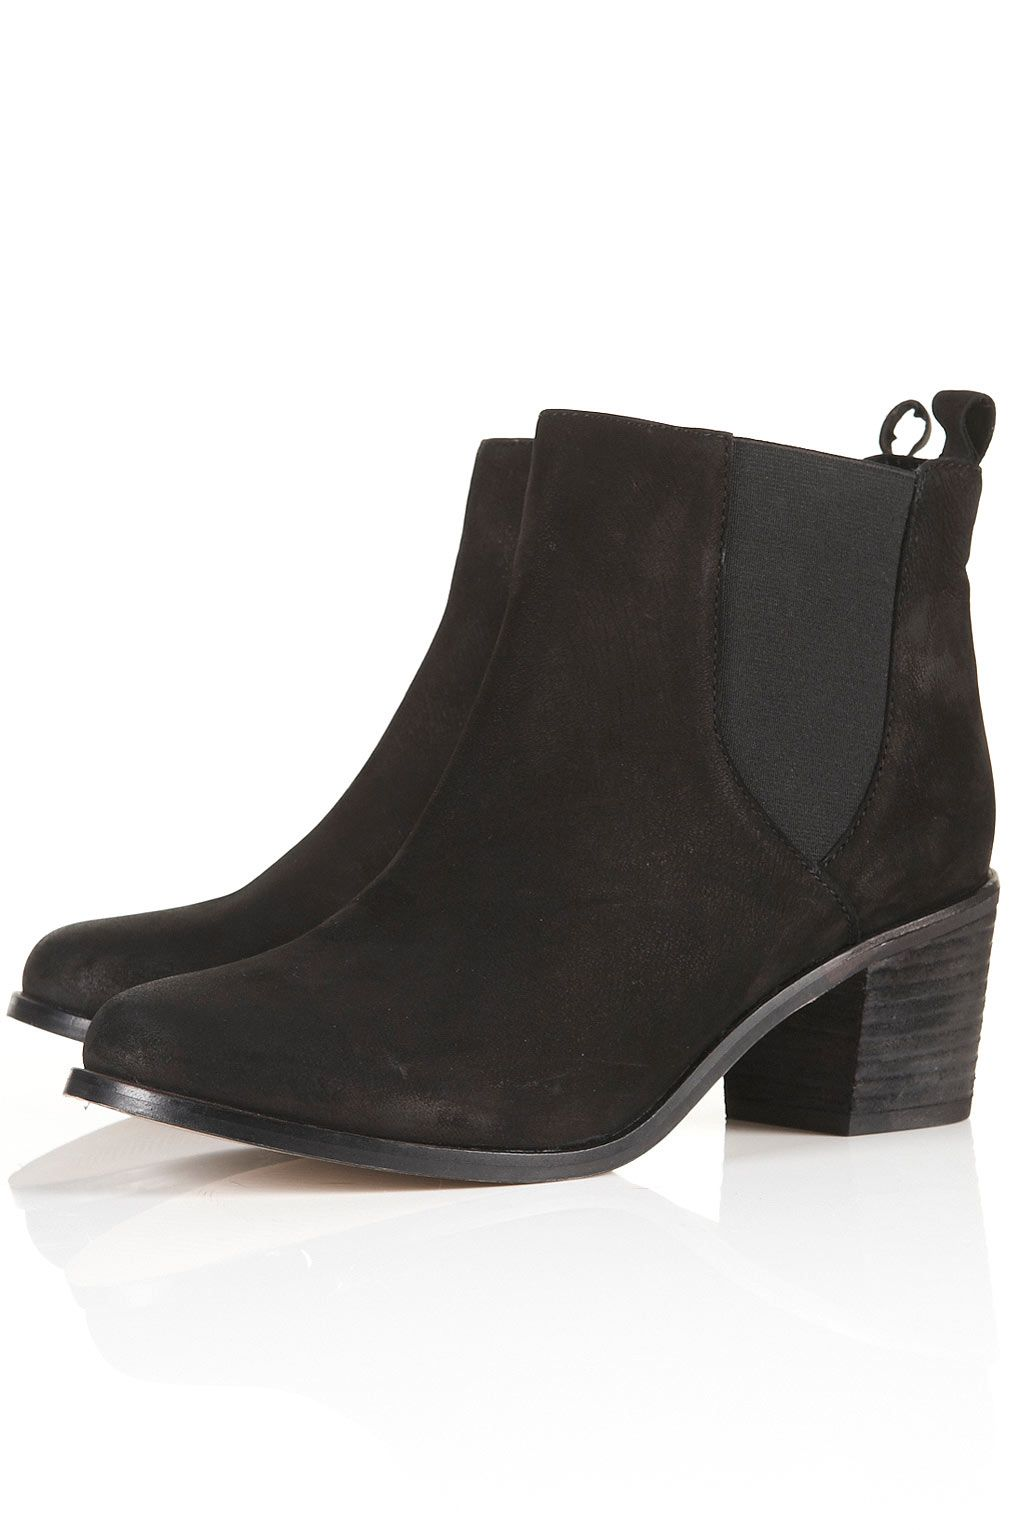 AMOS Pull On Chelsea Boots - Boots